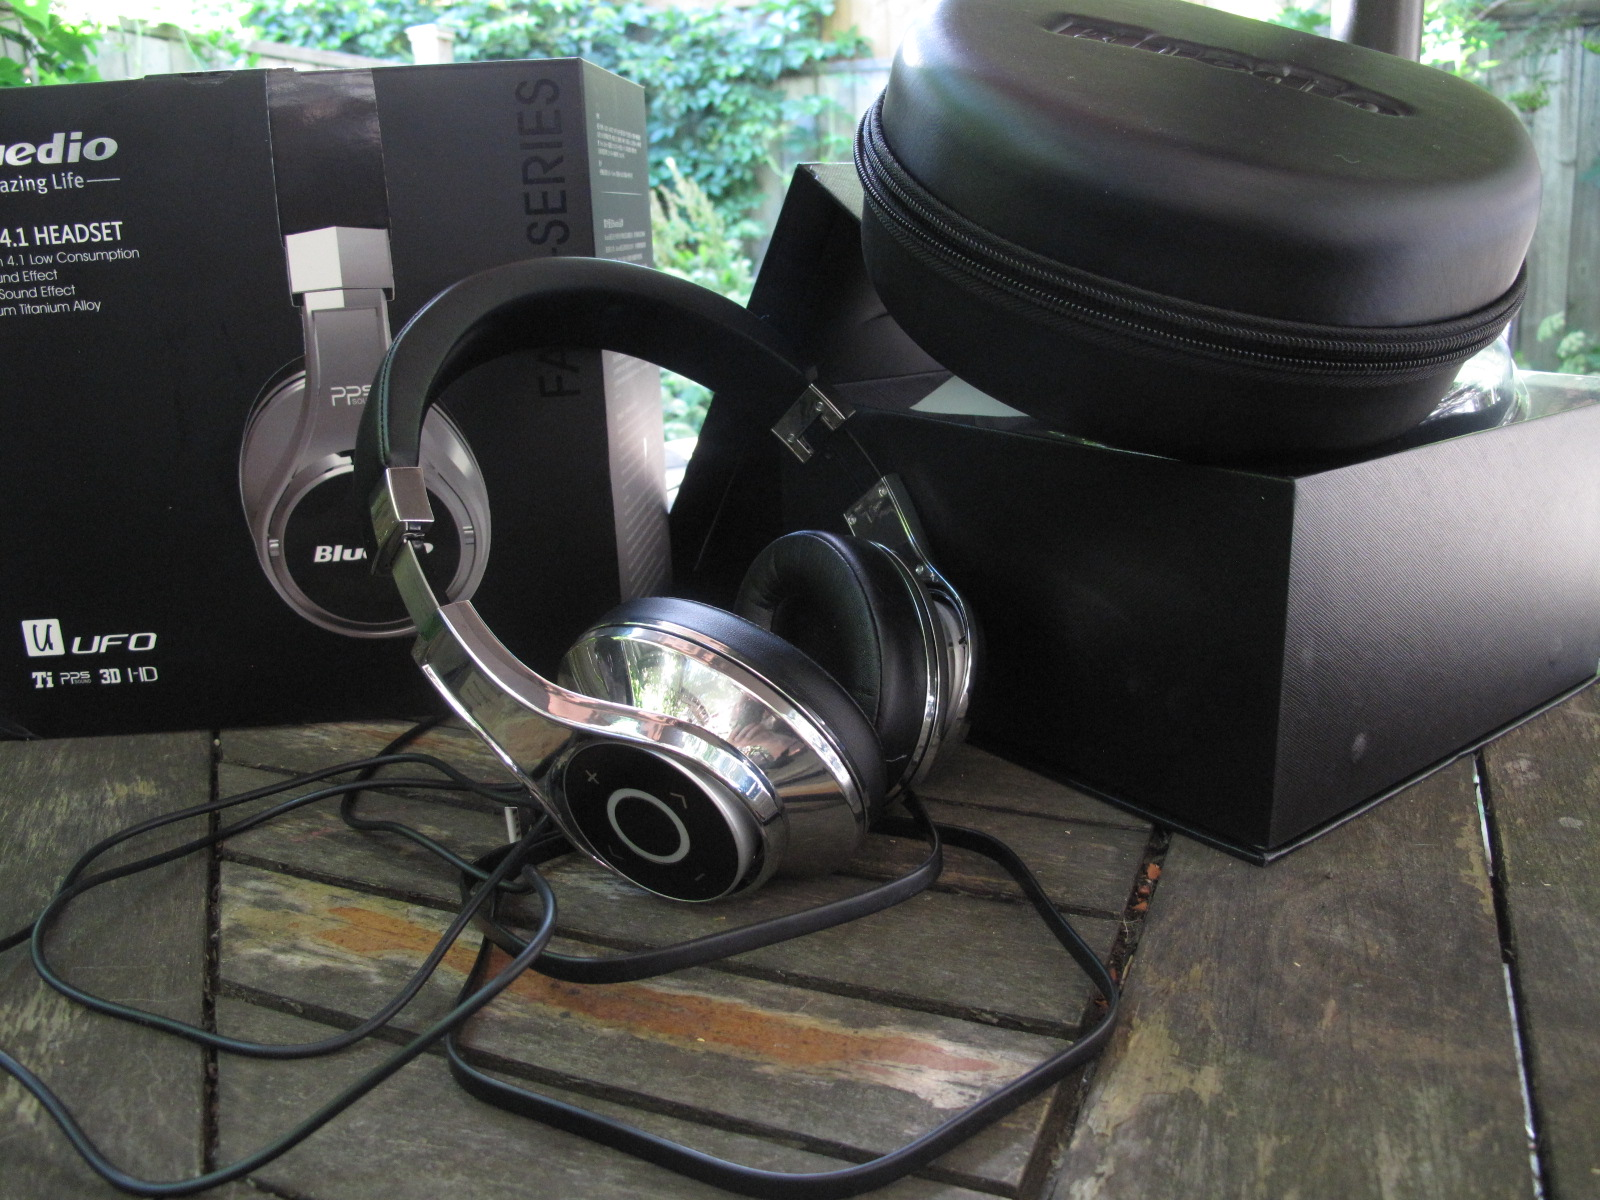 Bluedio U Ufo Pps 8 Drivers Over Ear Bluetooth Wireless Headphone Premium Headset High End Headphones So What To Me Was An Unknown Entity Is Fairly Well Known Amongst The Crowd Suffice Say There A Fair Amount Metal In Construction